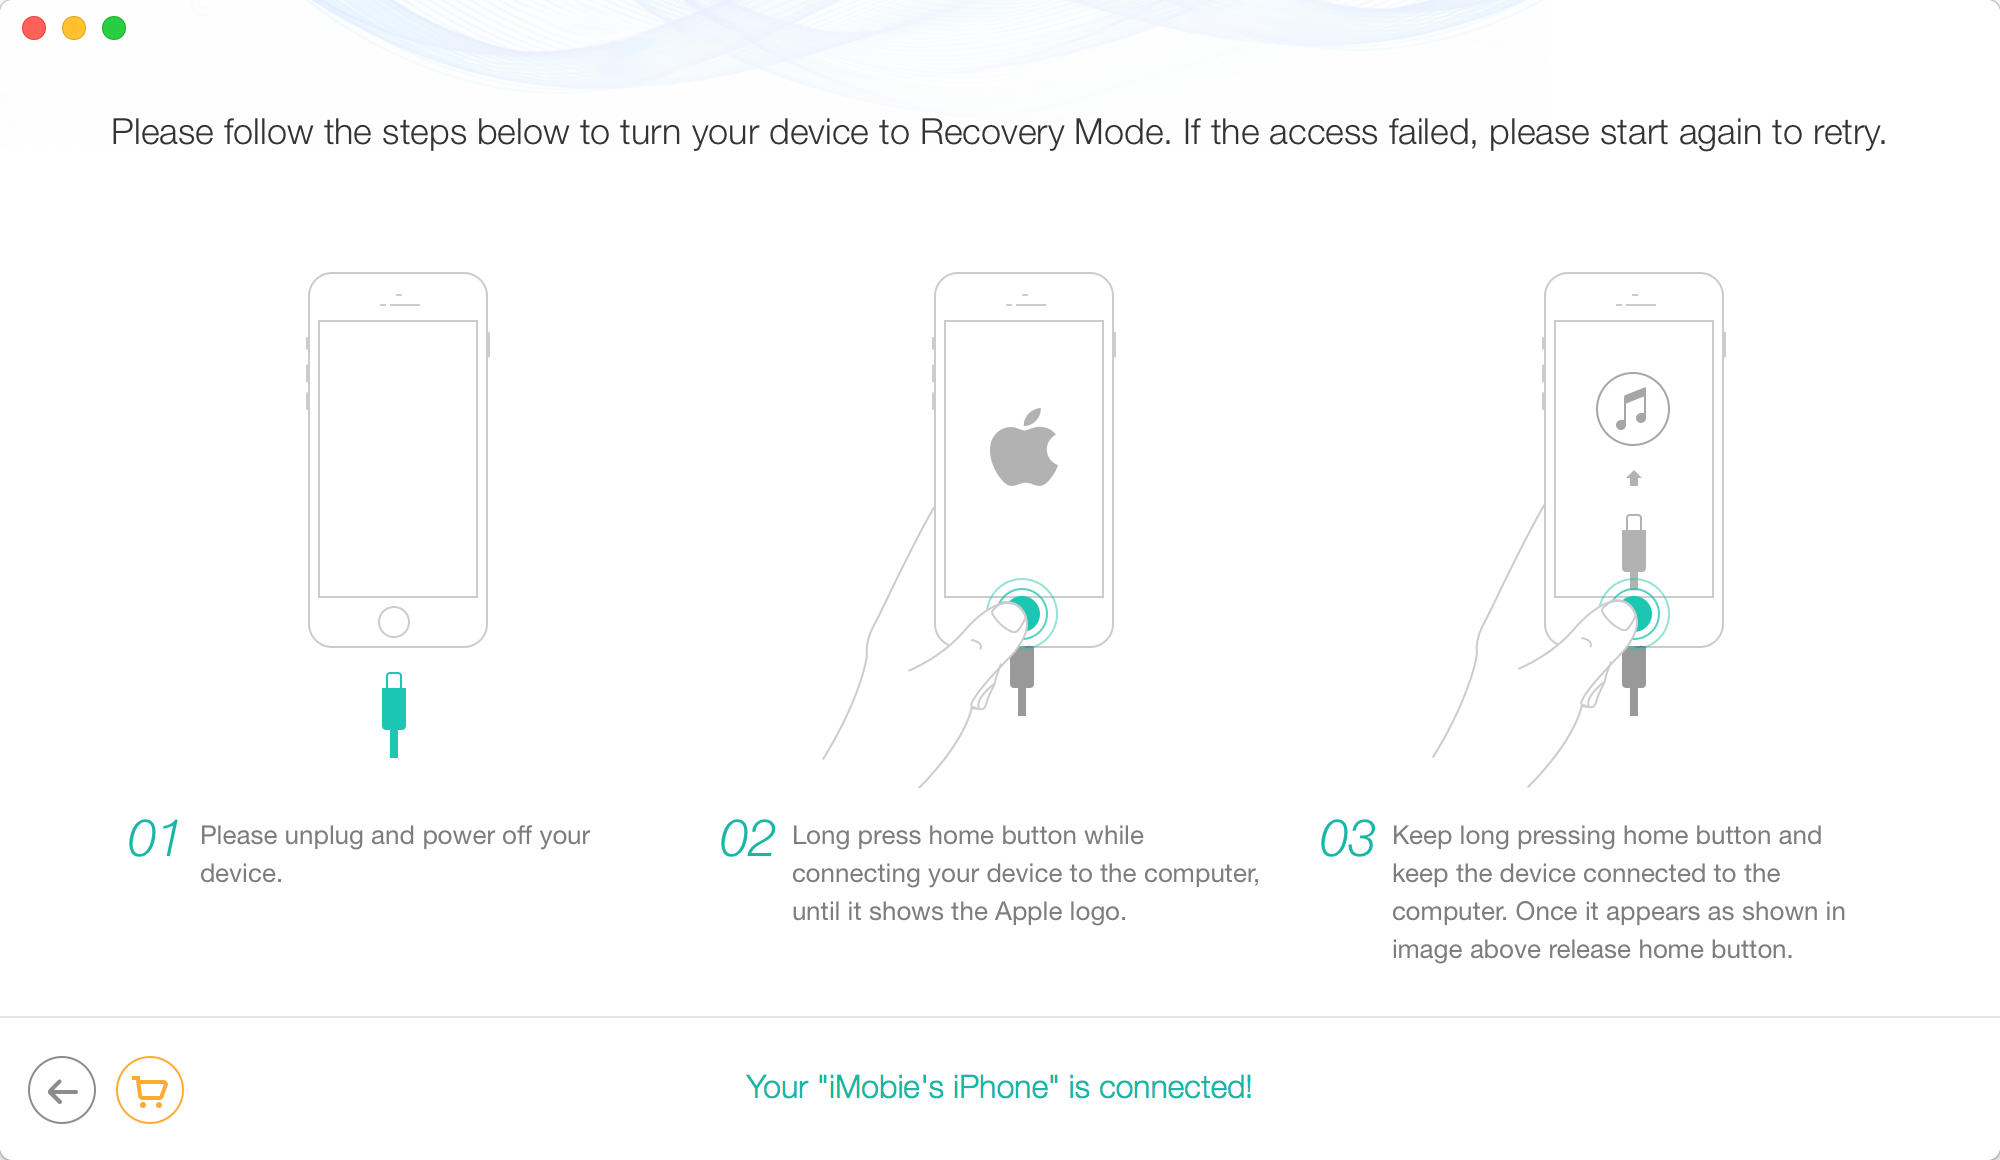 Restore iPhone in Recovery Mode Without iTune - Step 3